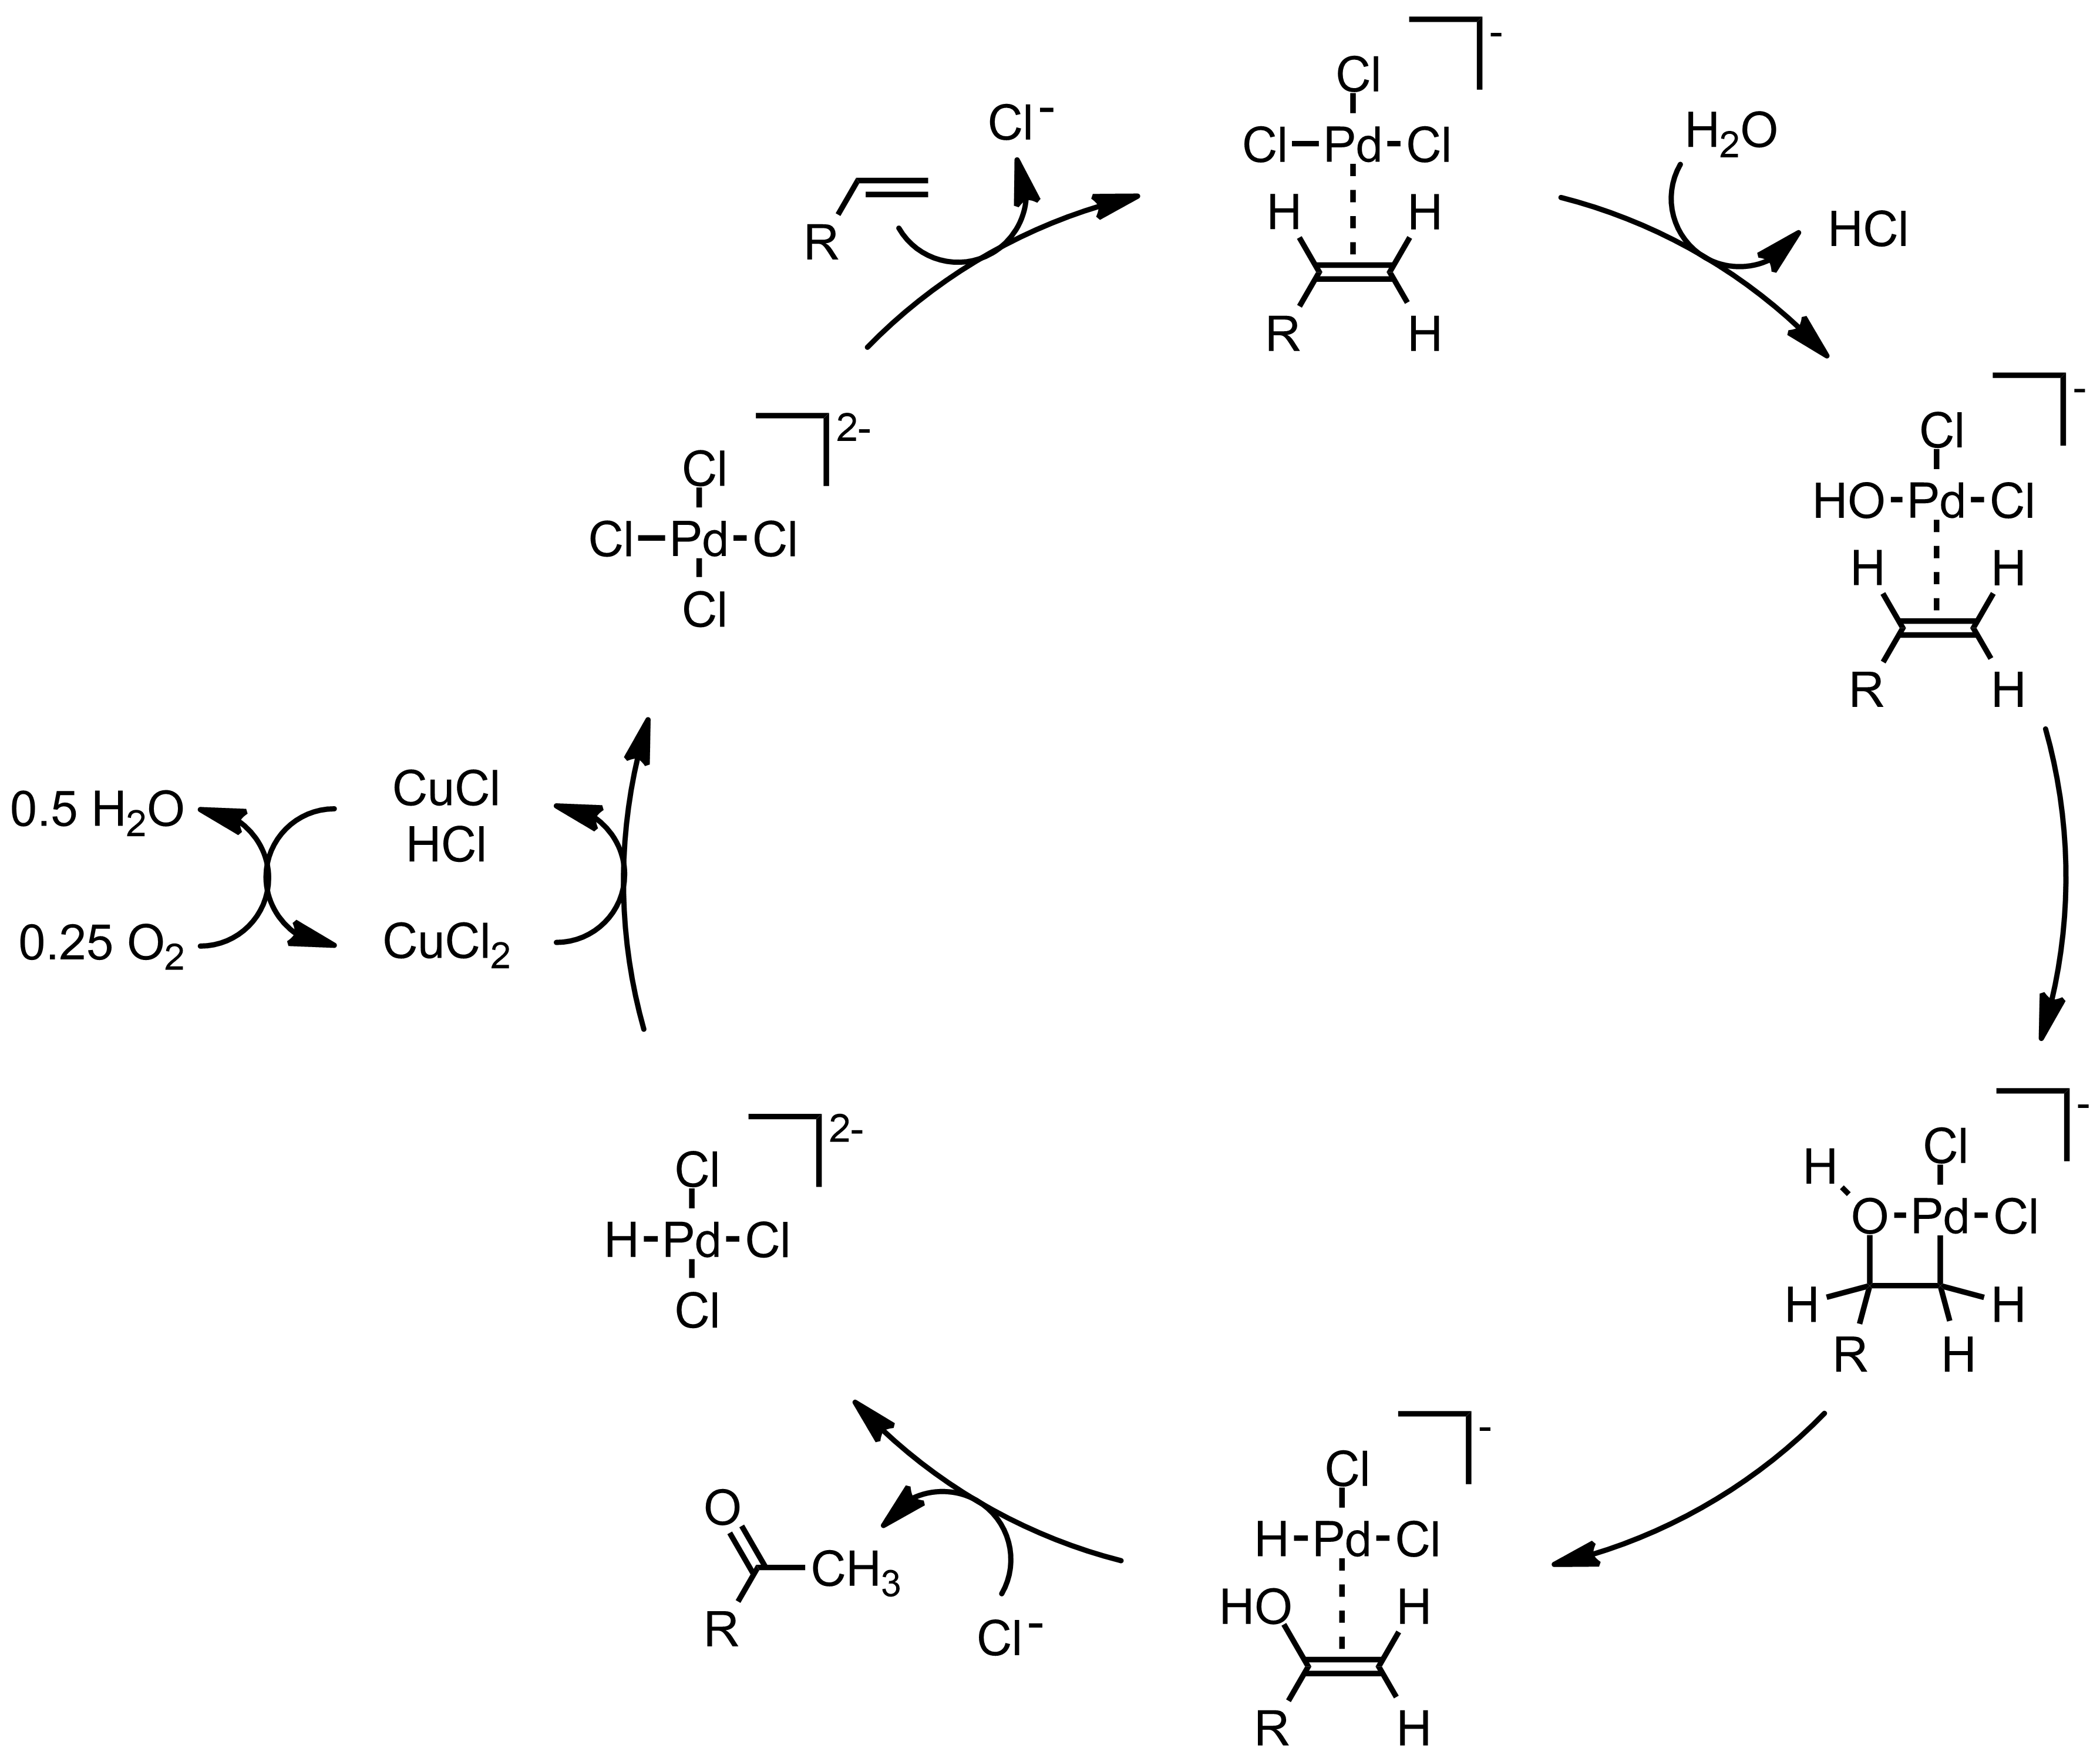 Mechanism of the Wacker Oxidation